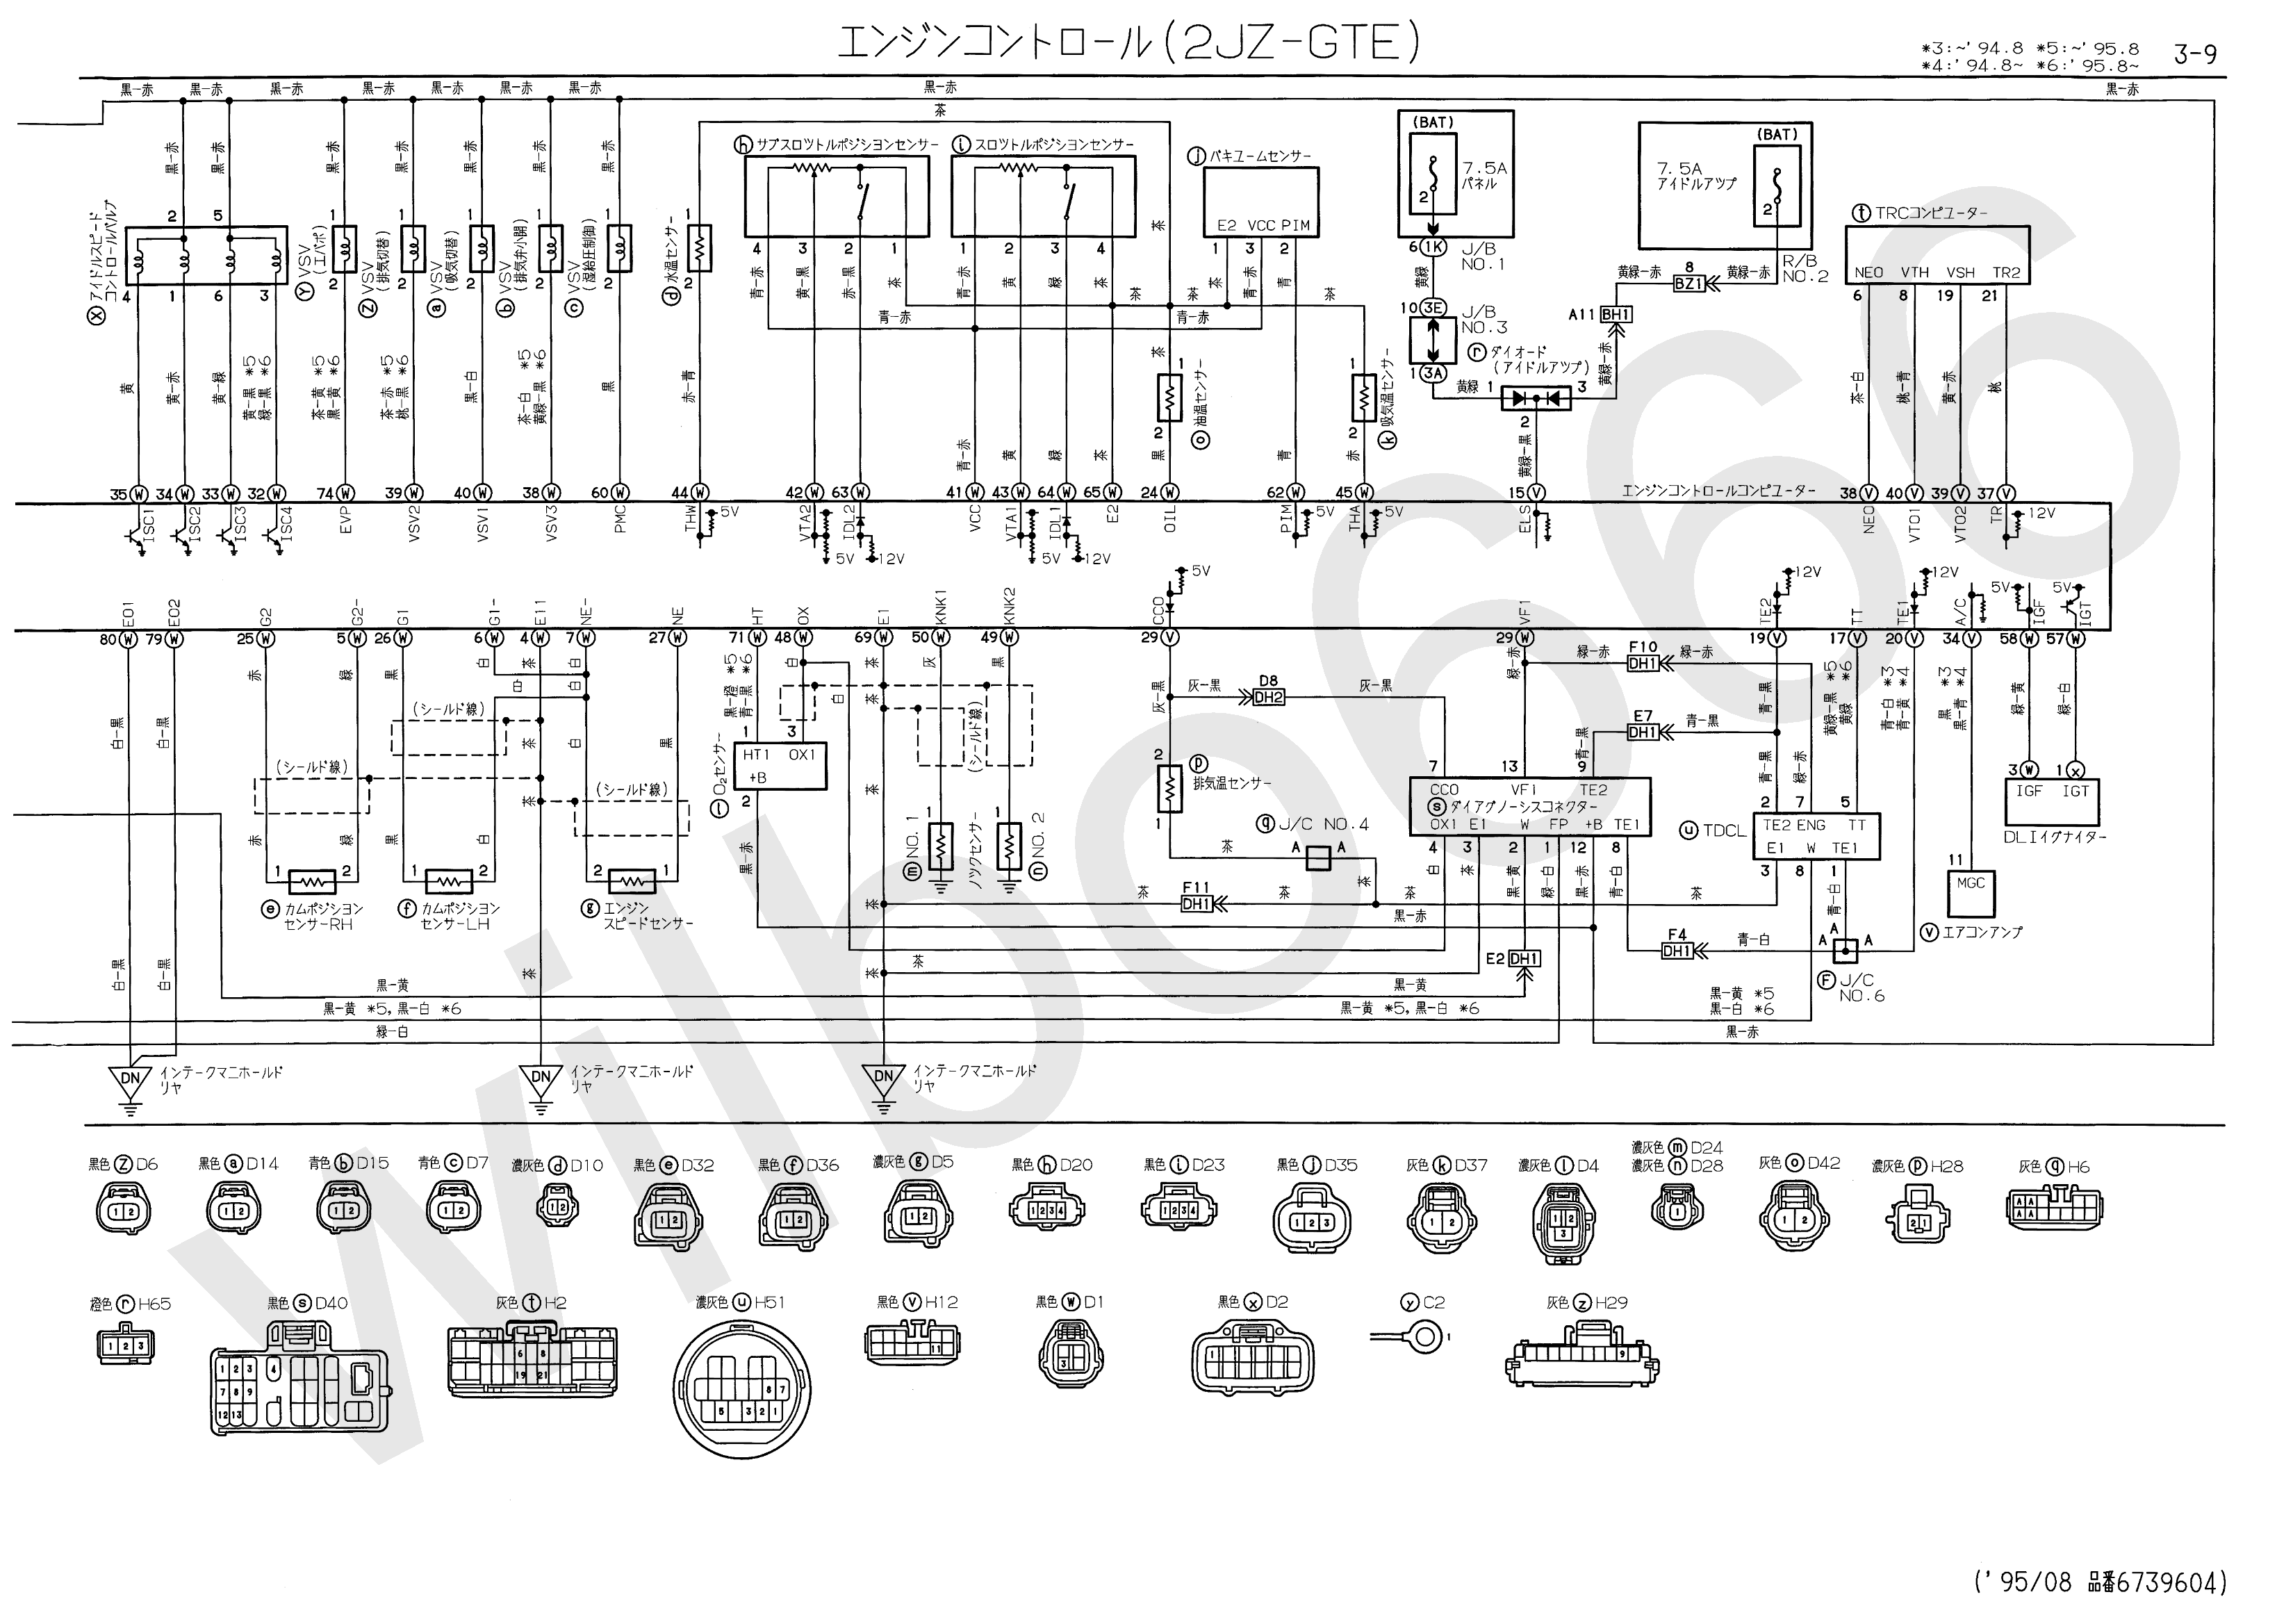 jz ge ecu wiring diagram jz discover your wiring diagram 2jz engine diagram